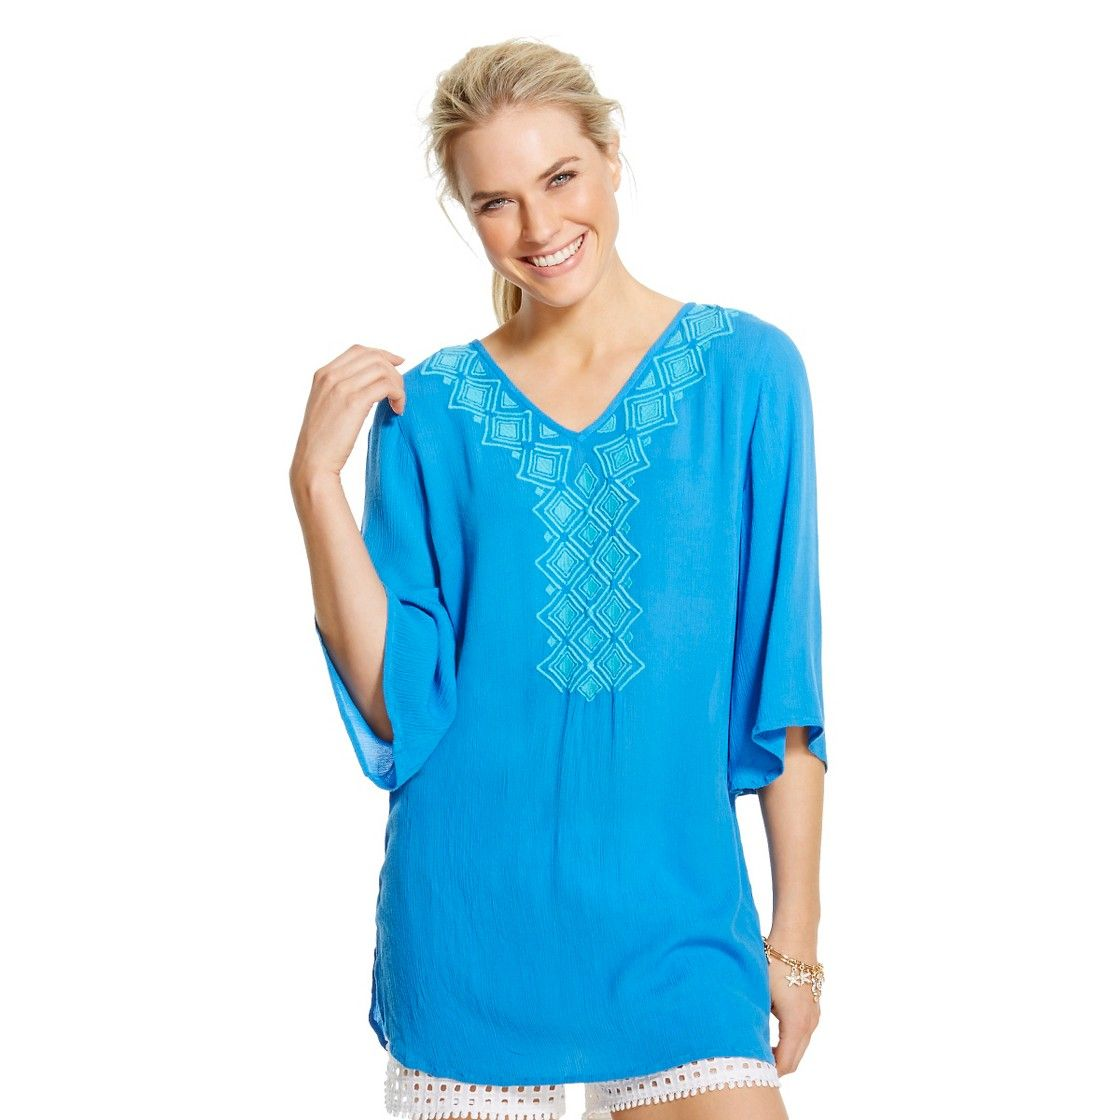 b22bc456abe Lilly Pulitzer for Target Women's Embroidered Tunic - Blue Bell $30 ...